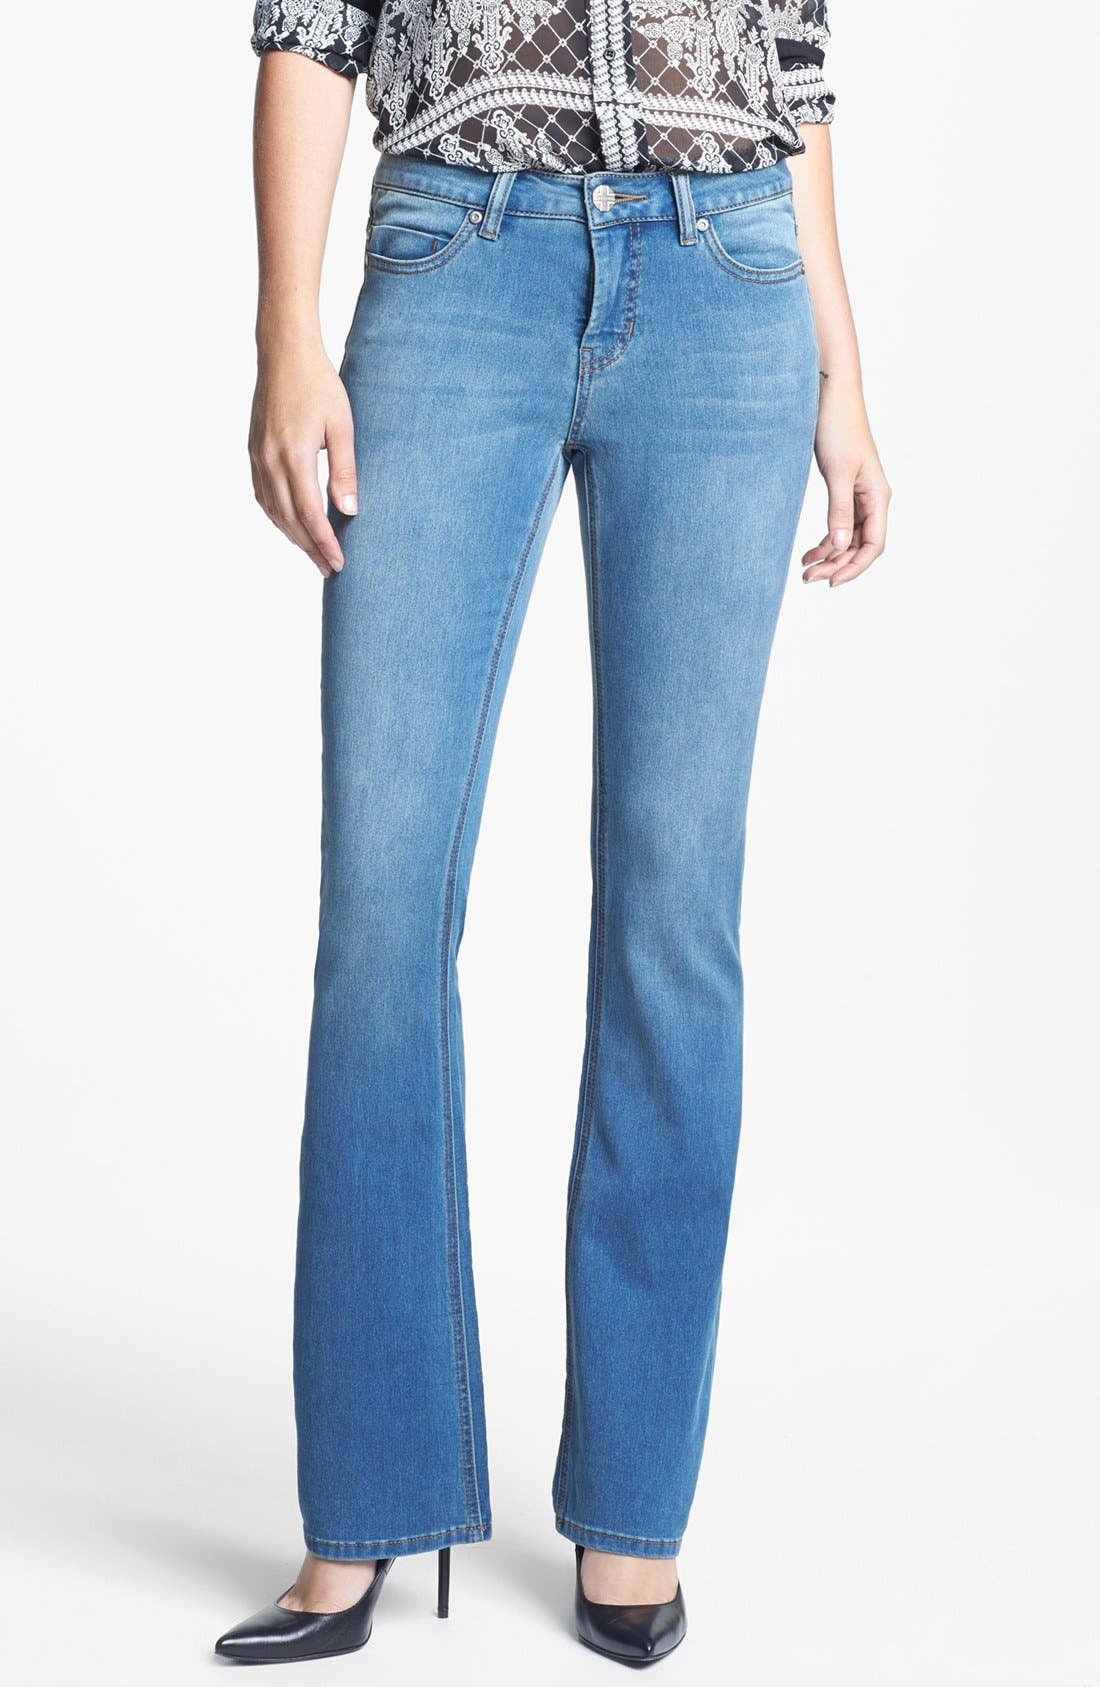 Alternate Image 1 Selected - Liverpool Jeans Company 'Lucy' Stretch Bootcut Jeans (Regular & Petite)